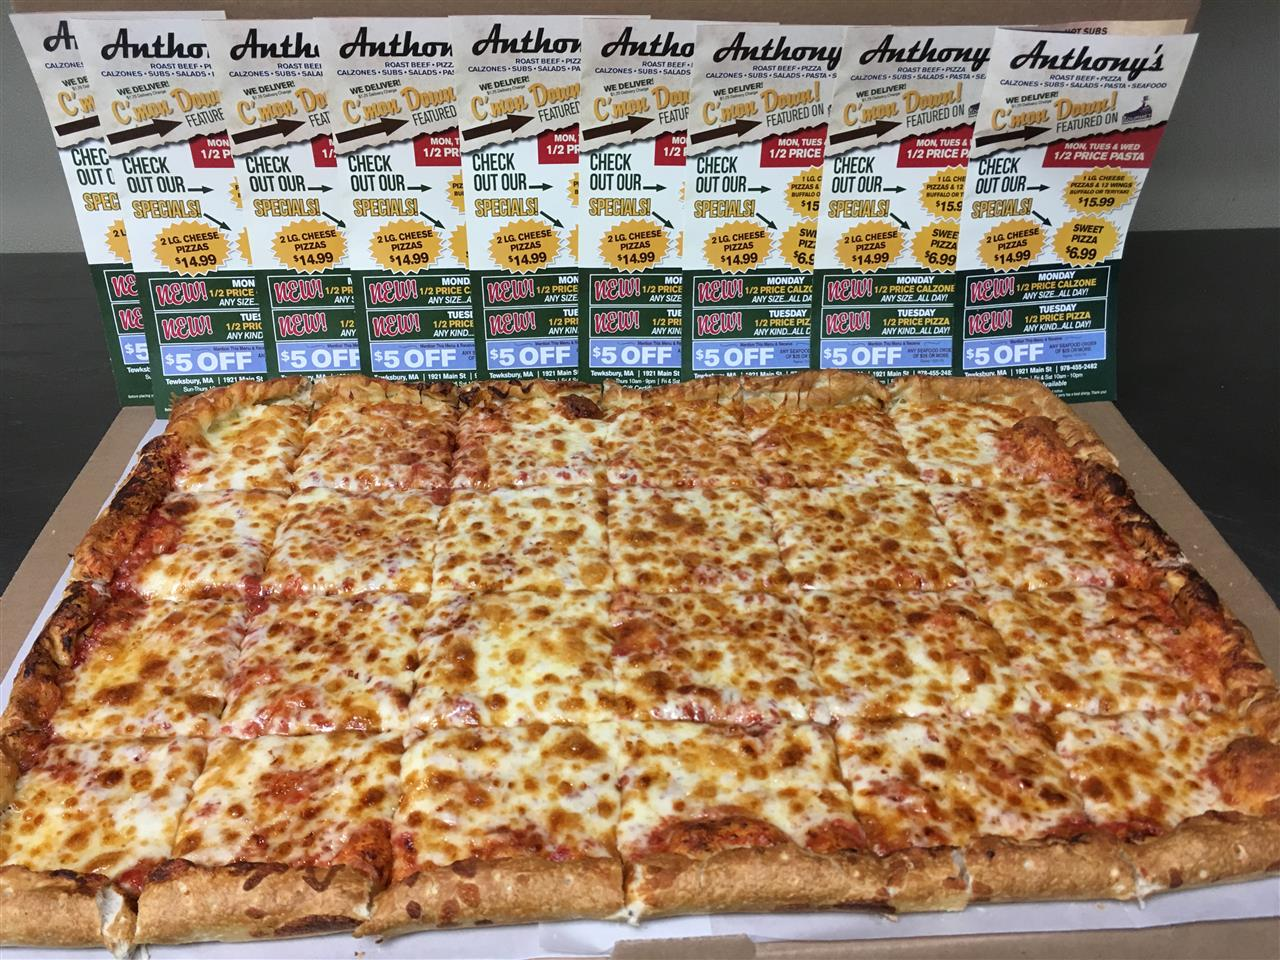 Party Size Pizza! This GIANT can be cut in 24, 36 or 48 slices!